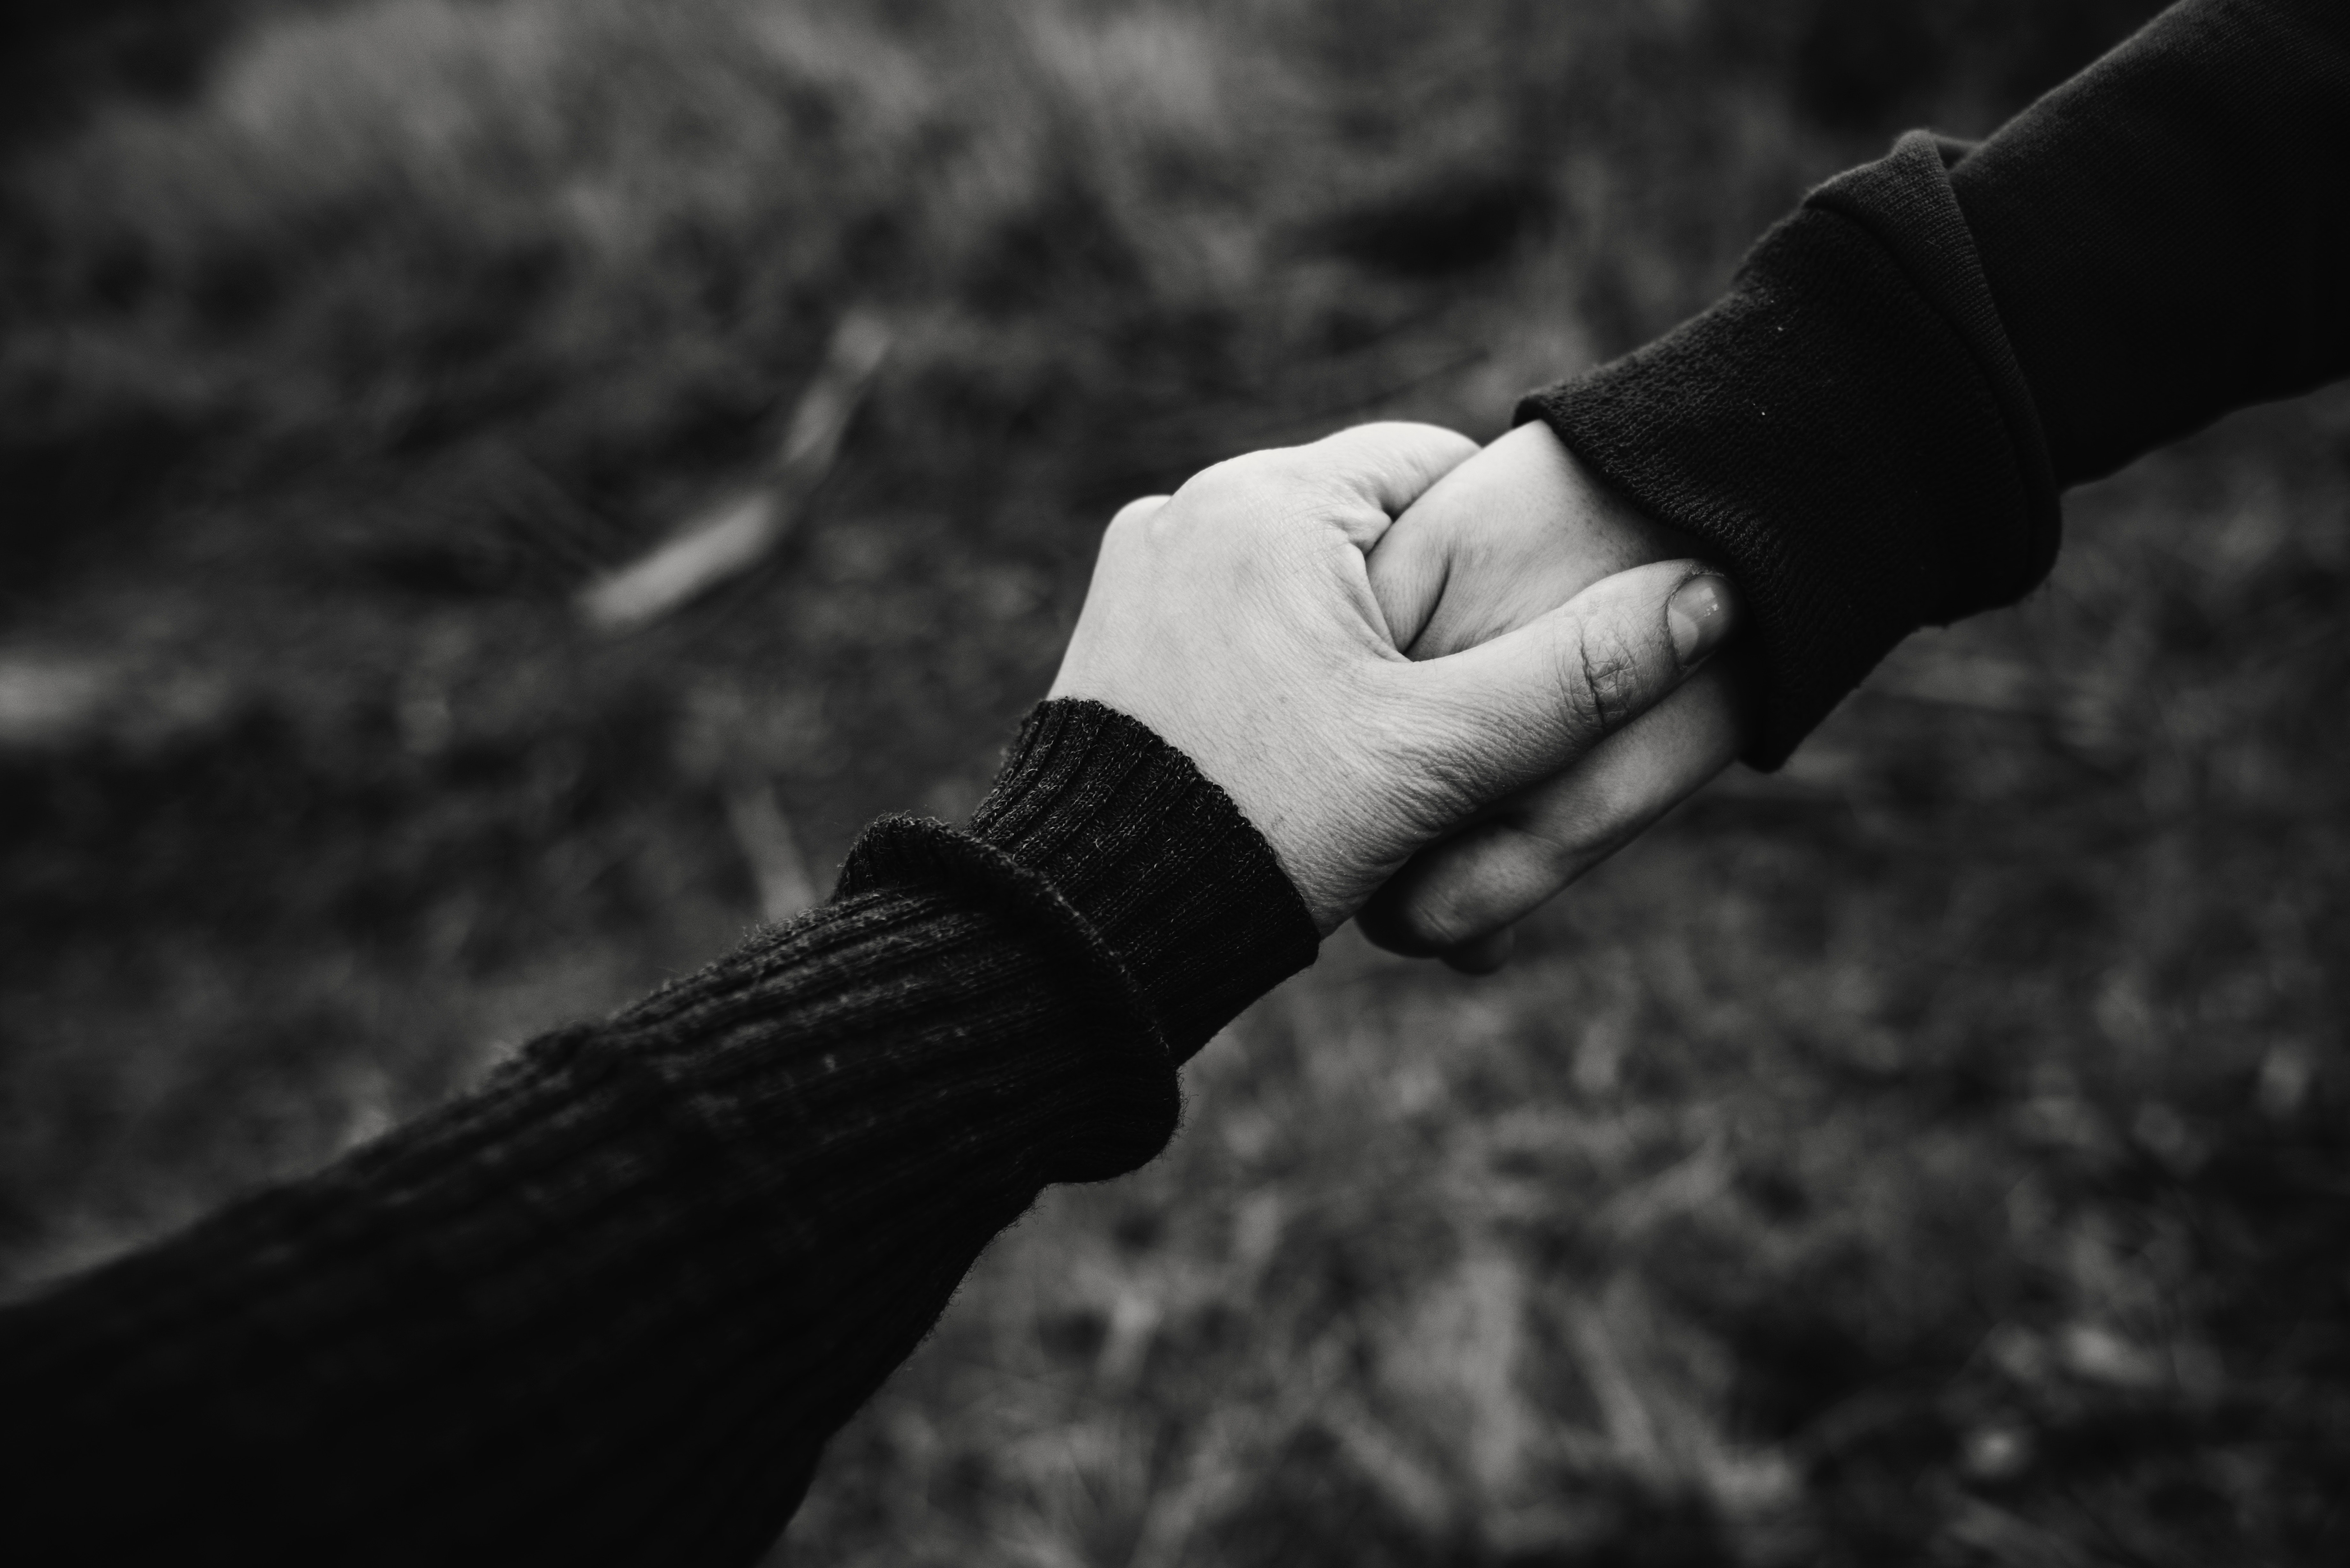 Black and White Photo of Holding Hands, Adult, Black-and-white, Blur, Close-up, HQ Photo